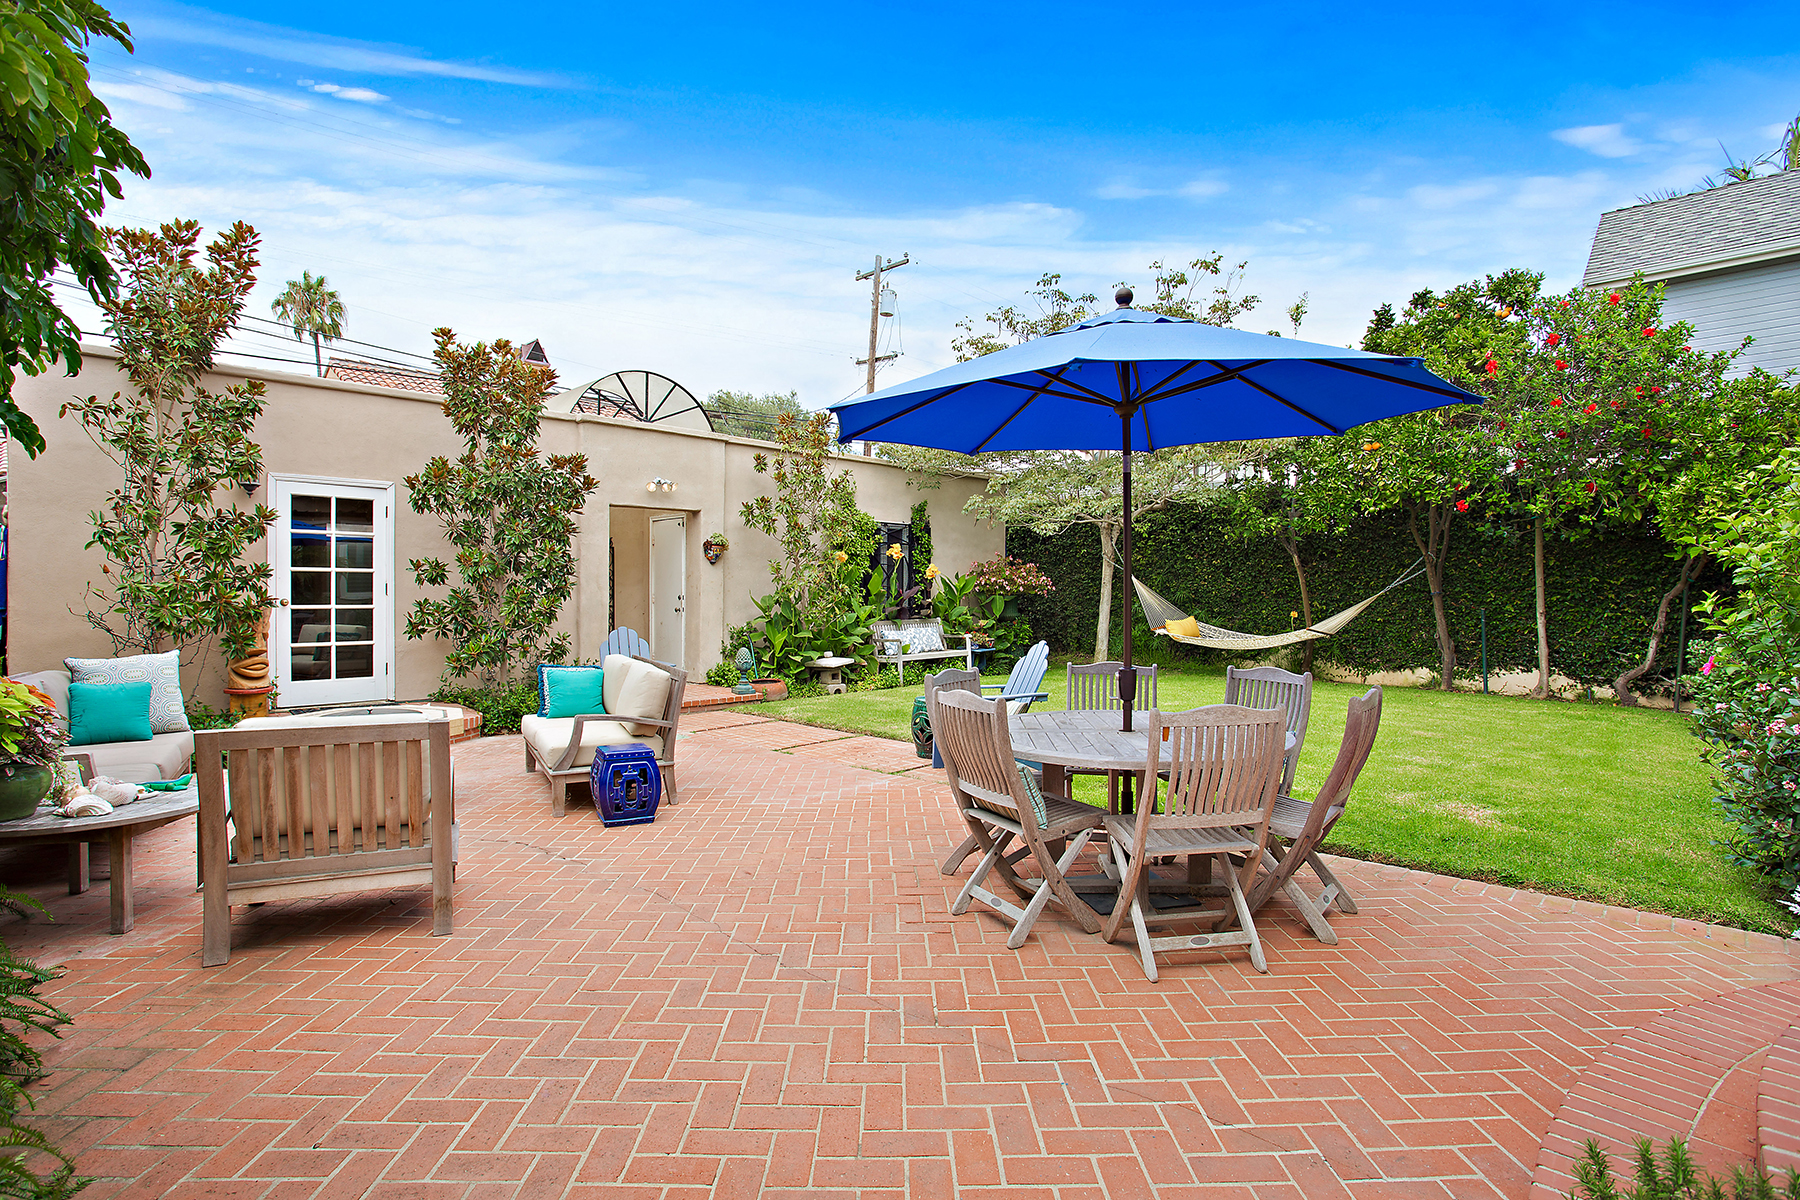 Additional photo for property listing at 868 J Avenue  Coronado, California 92118 United States